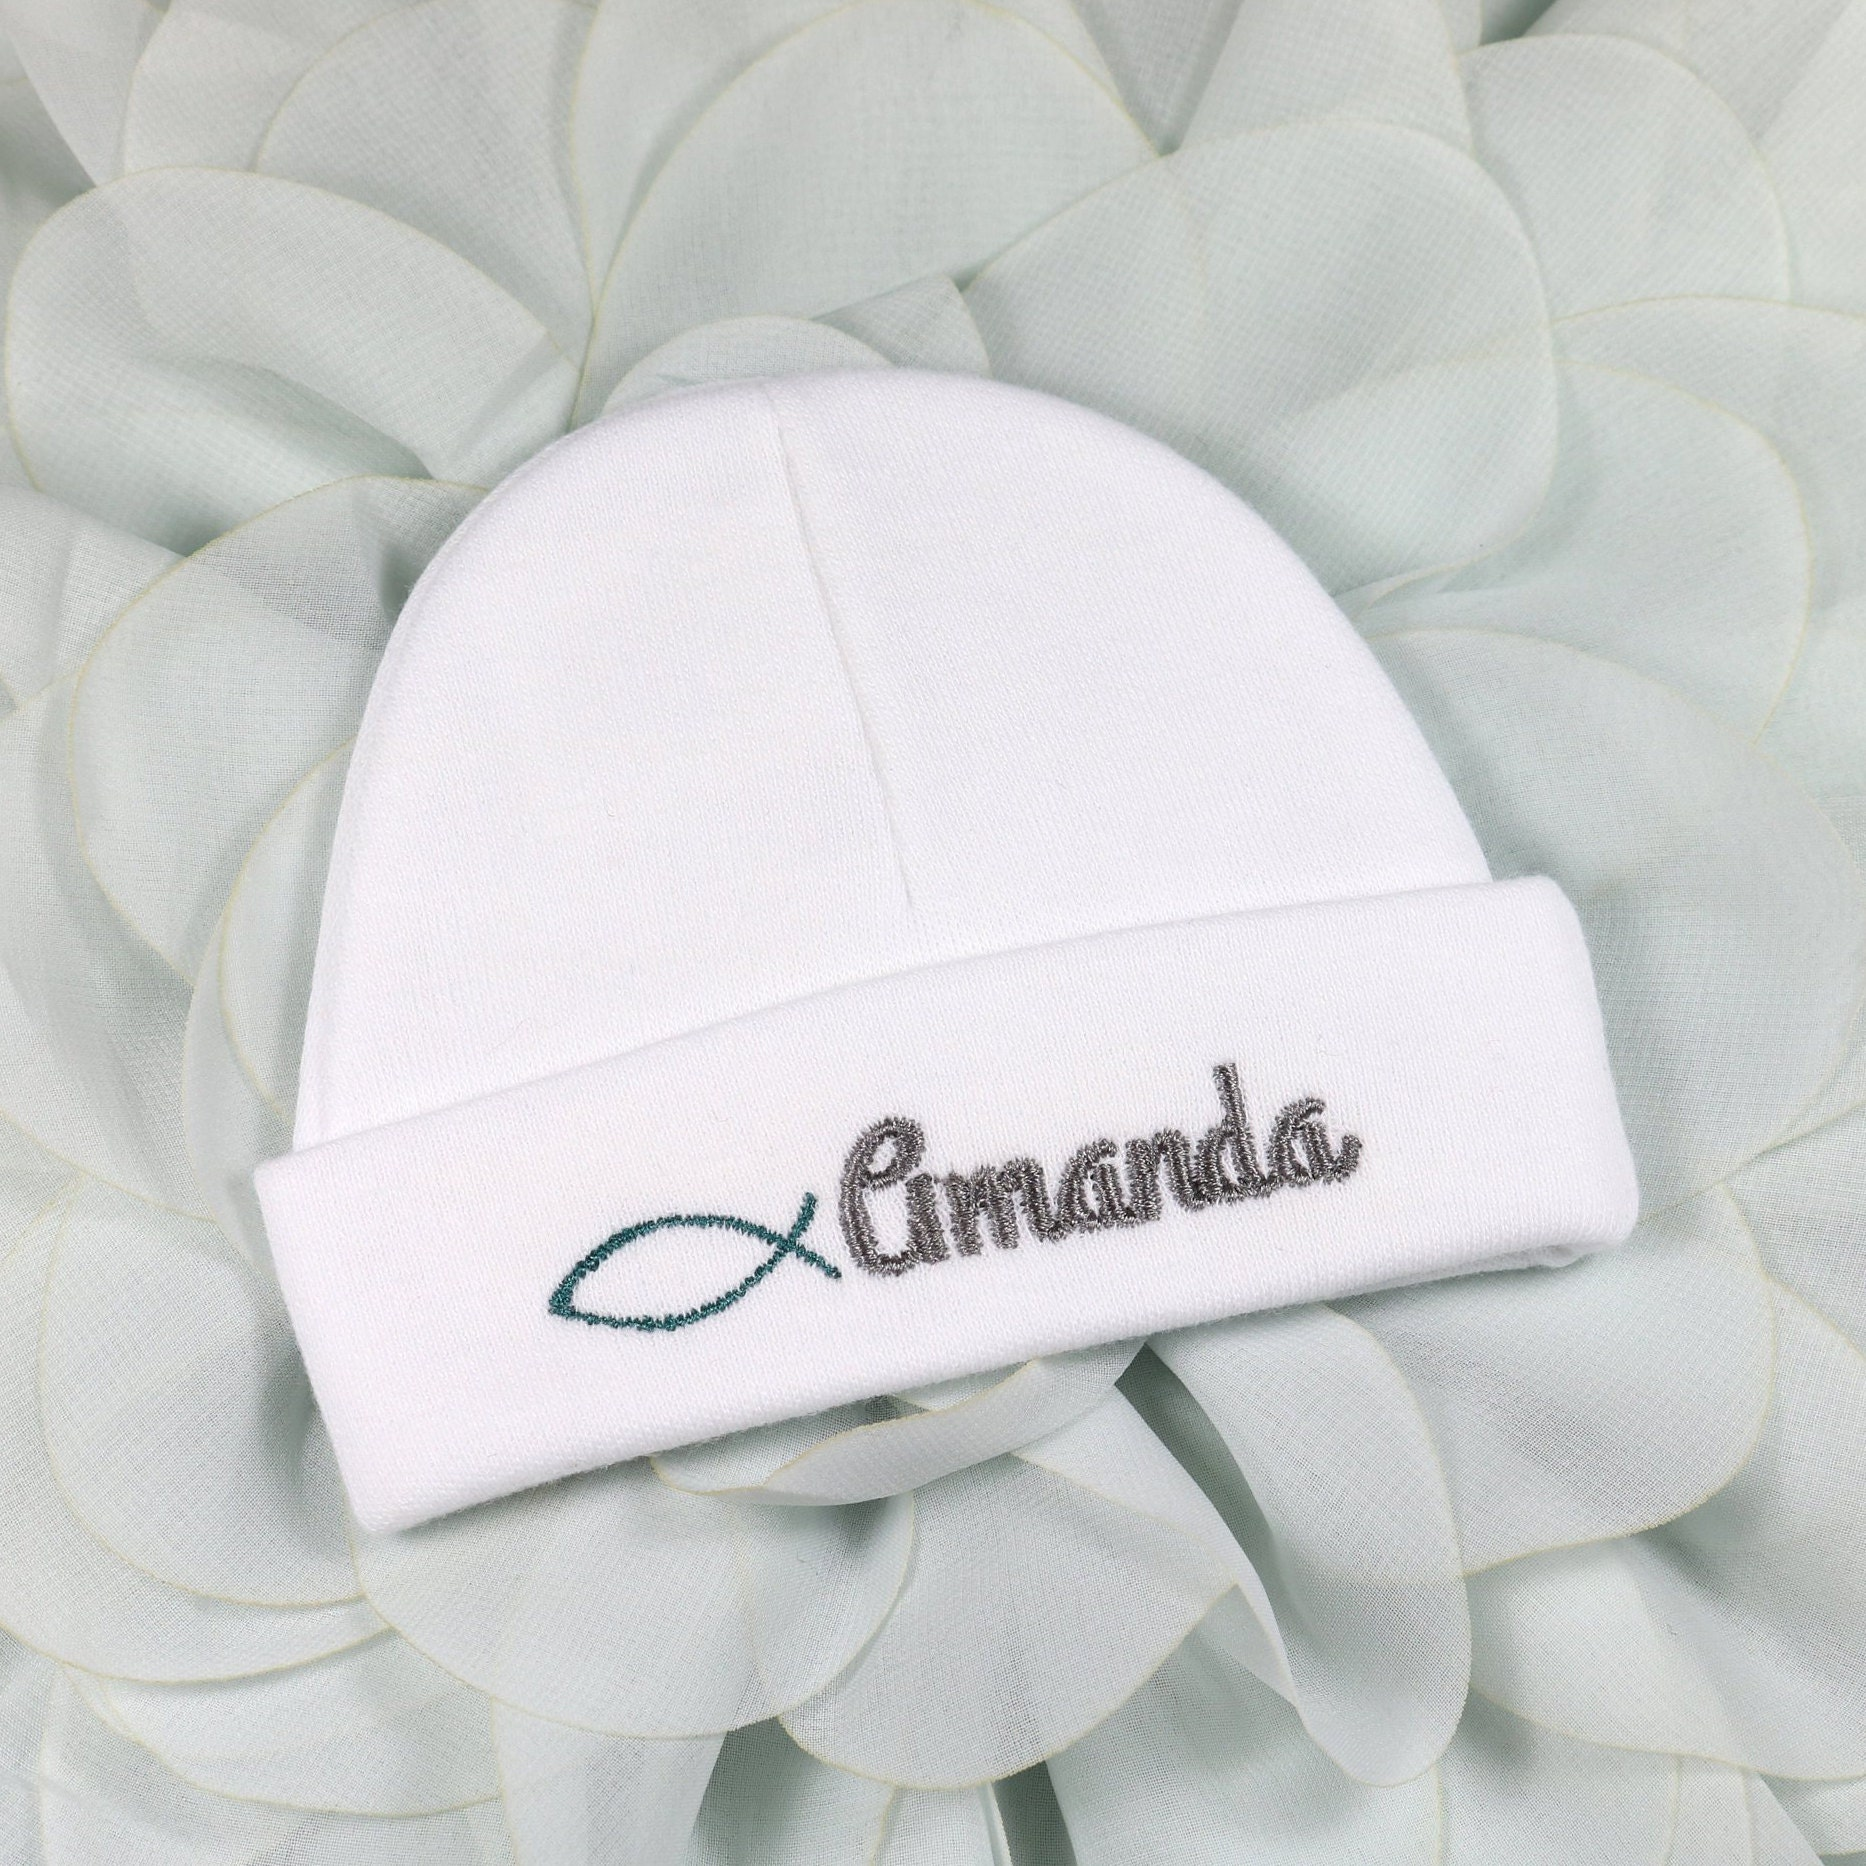 c3a584b02 Personalized baby hat - preemie / newborn / 0-3 months / 3-6 months.  gallery photo ...